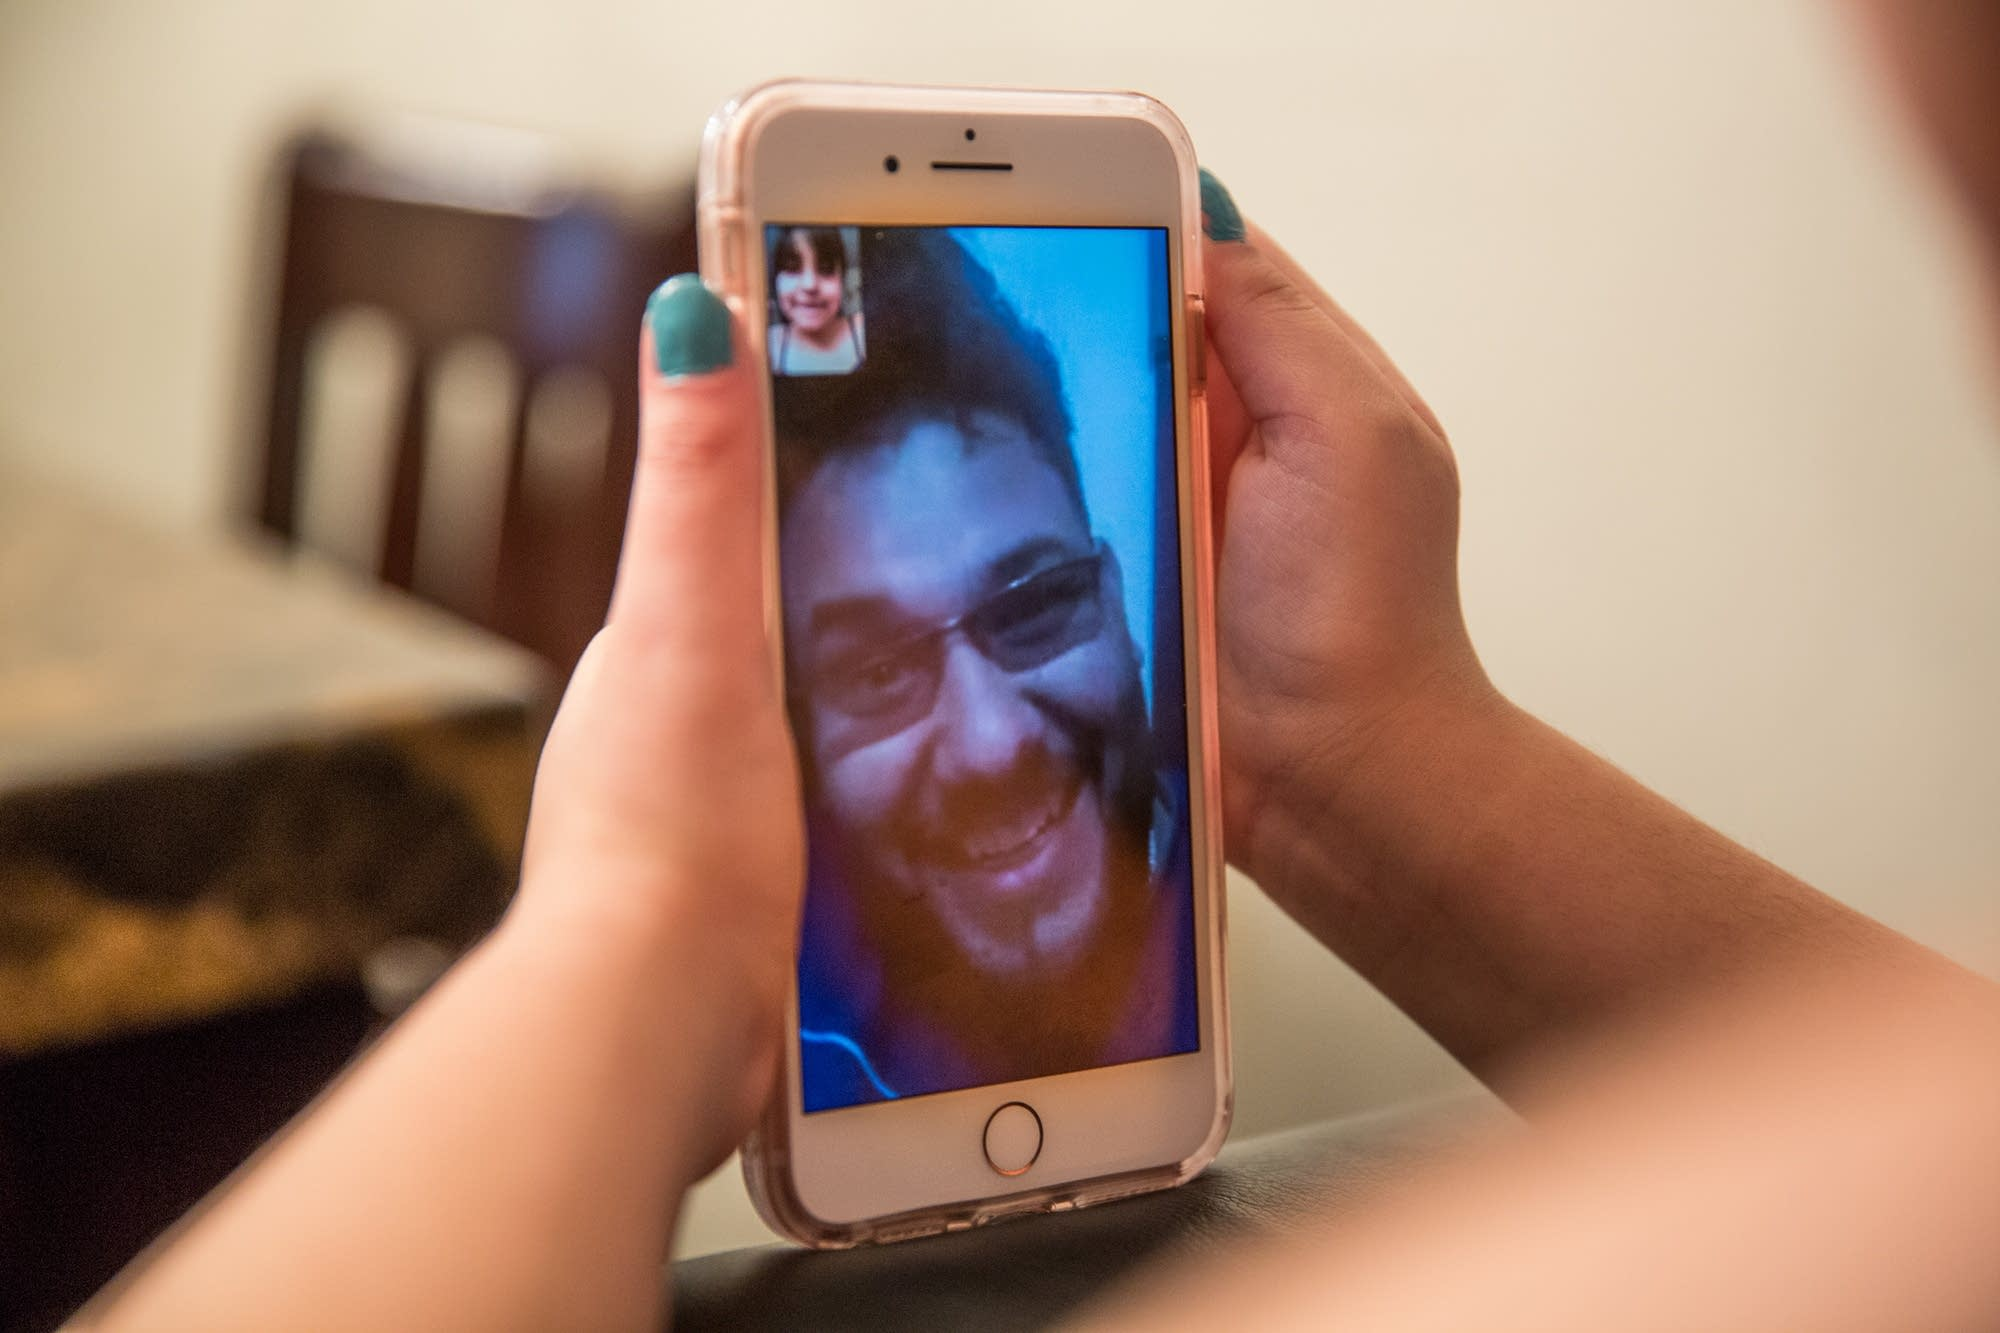 Hasanain video chats with his daughter.